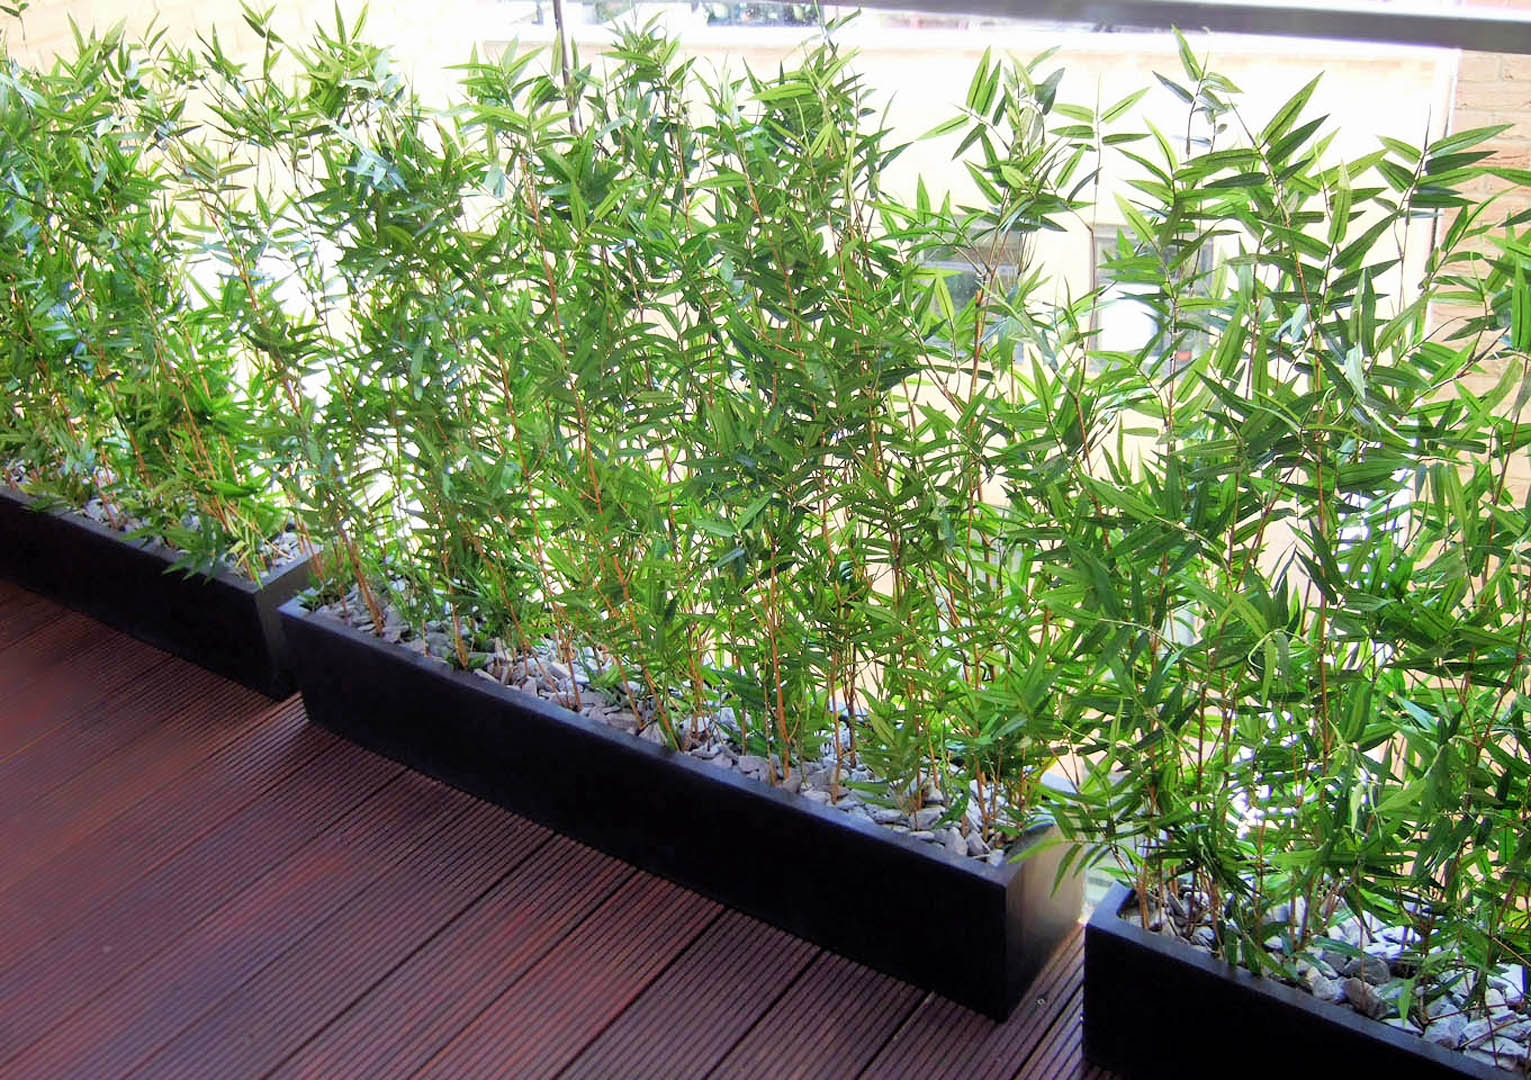 574 fake landascapes 90cm high balcony screening bamboo in 90x20x18 planters and slate surfacing